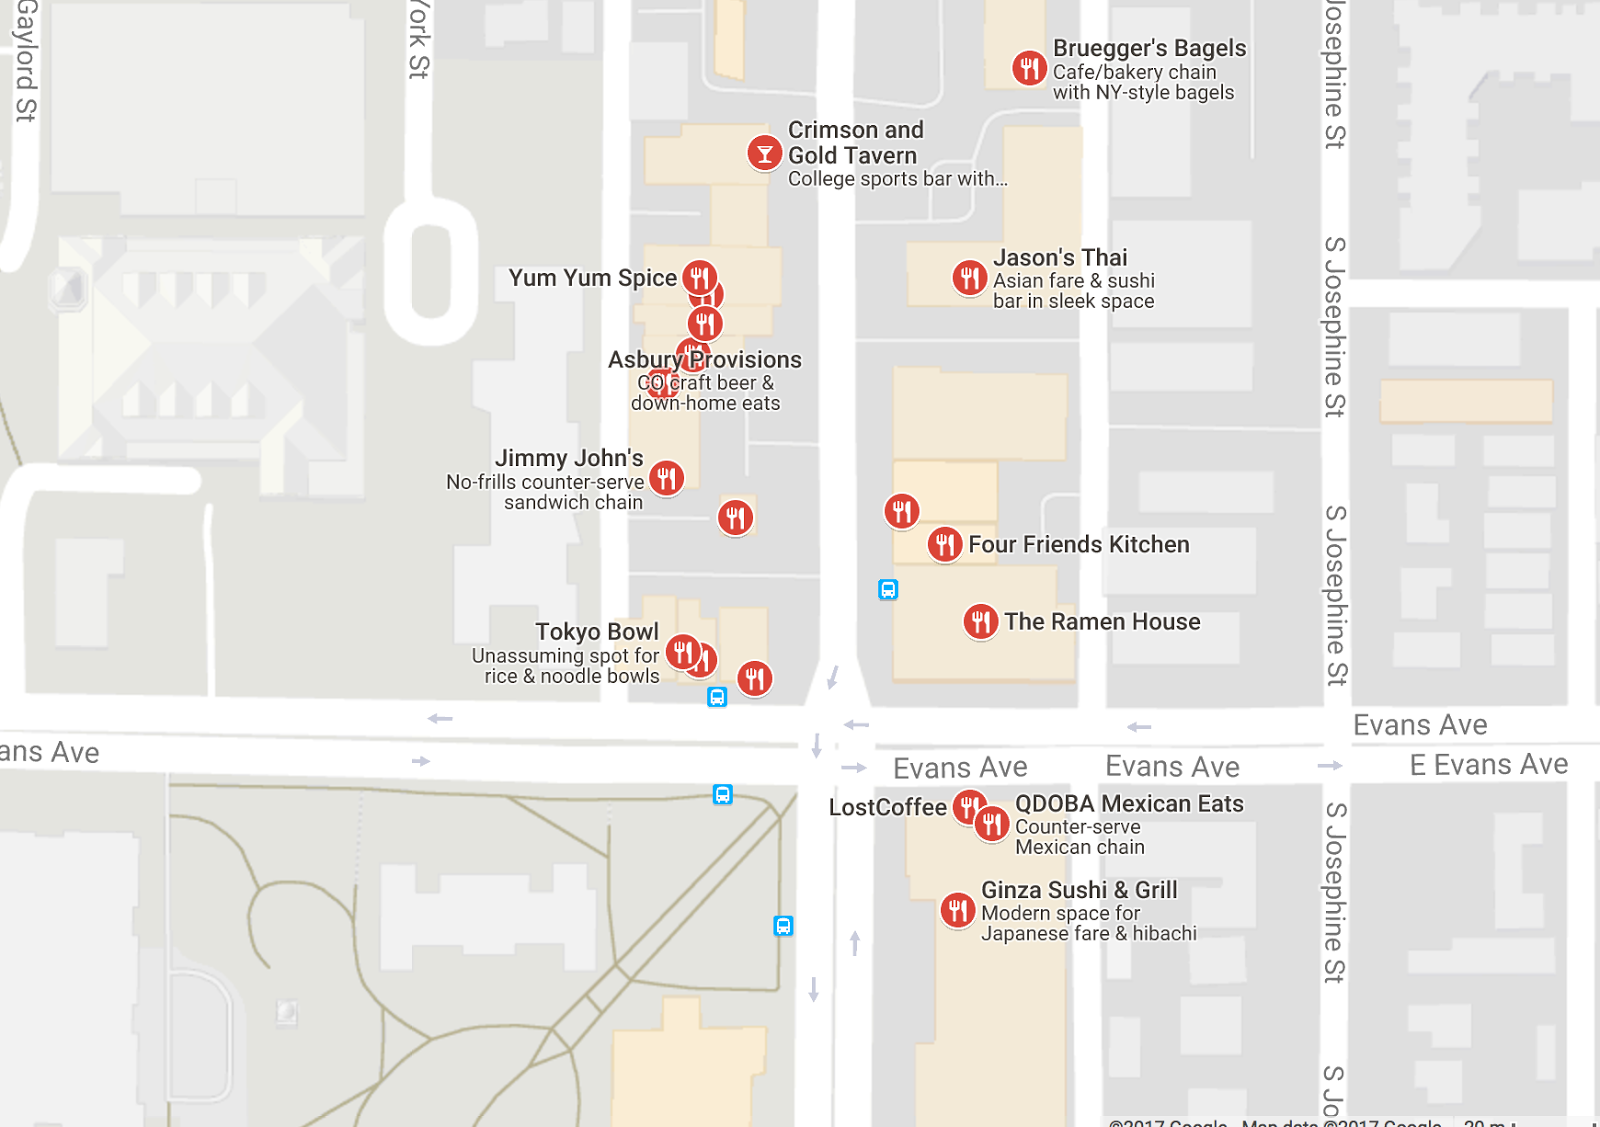 Restaurants to the east of main campus (near University and Evans)